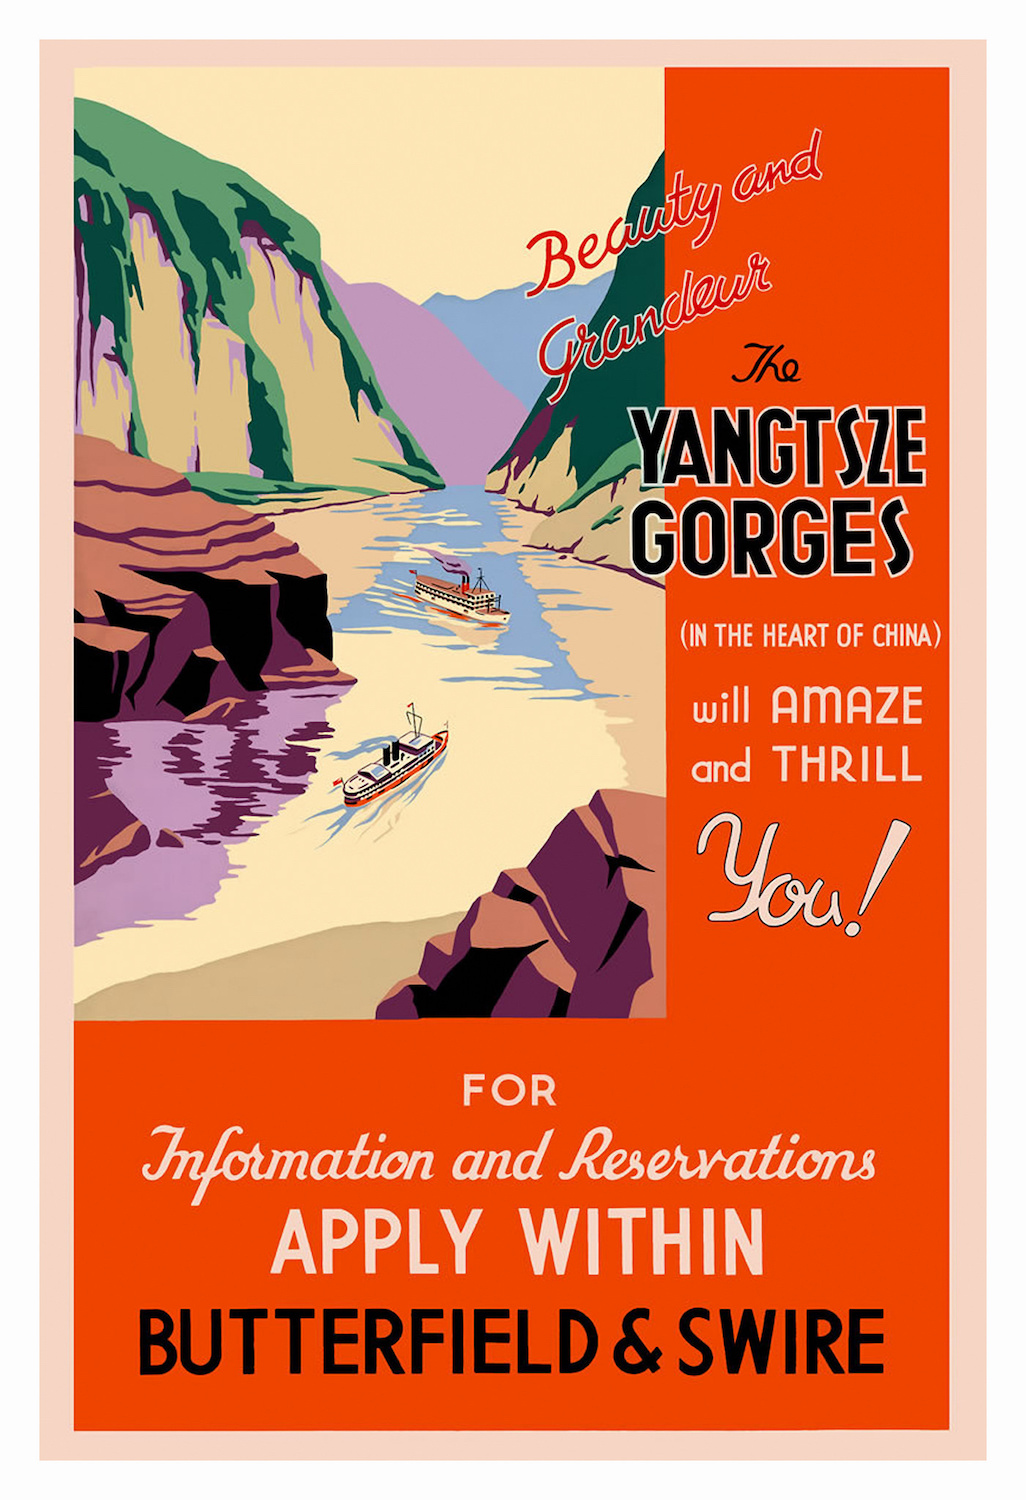 CHESIERES VILLARS Vintage Travel//Skiing Poster  A1,A2,A3,A4 Sizes ARVEYES.